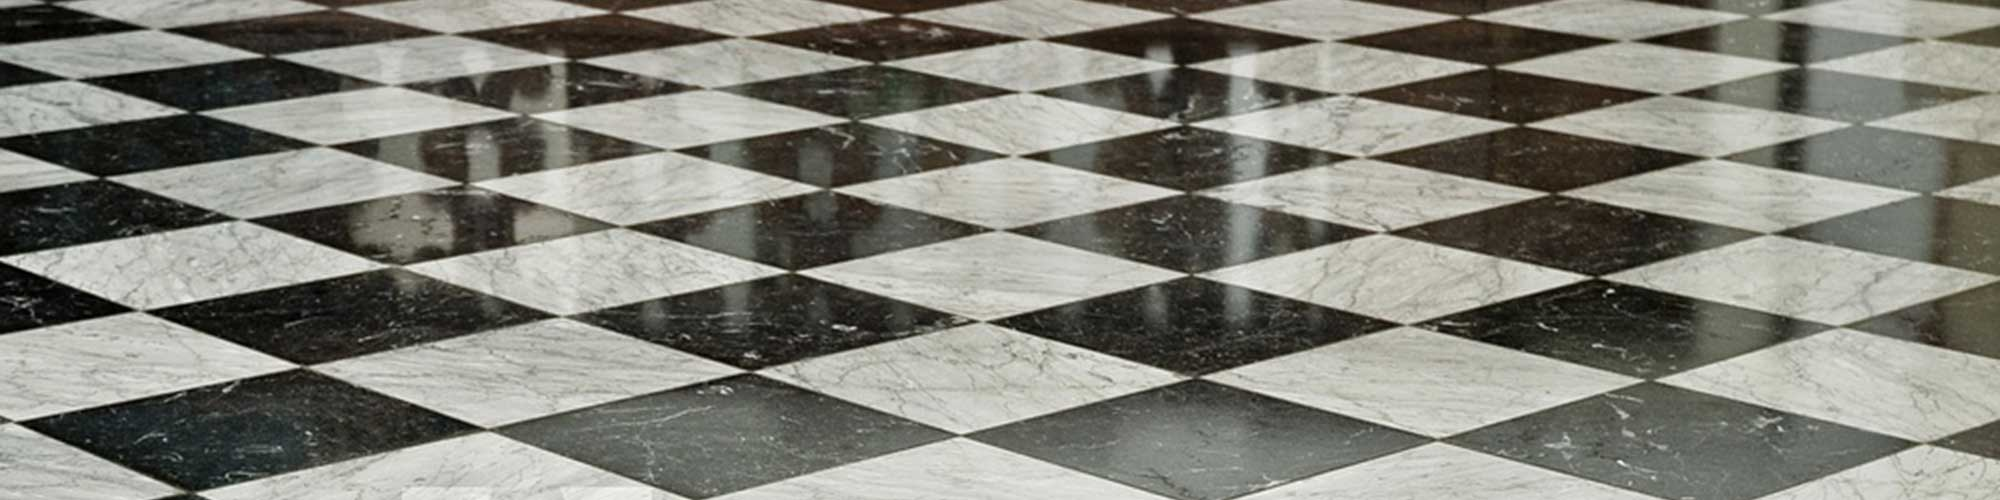 Commercial Tile Floors